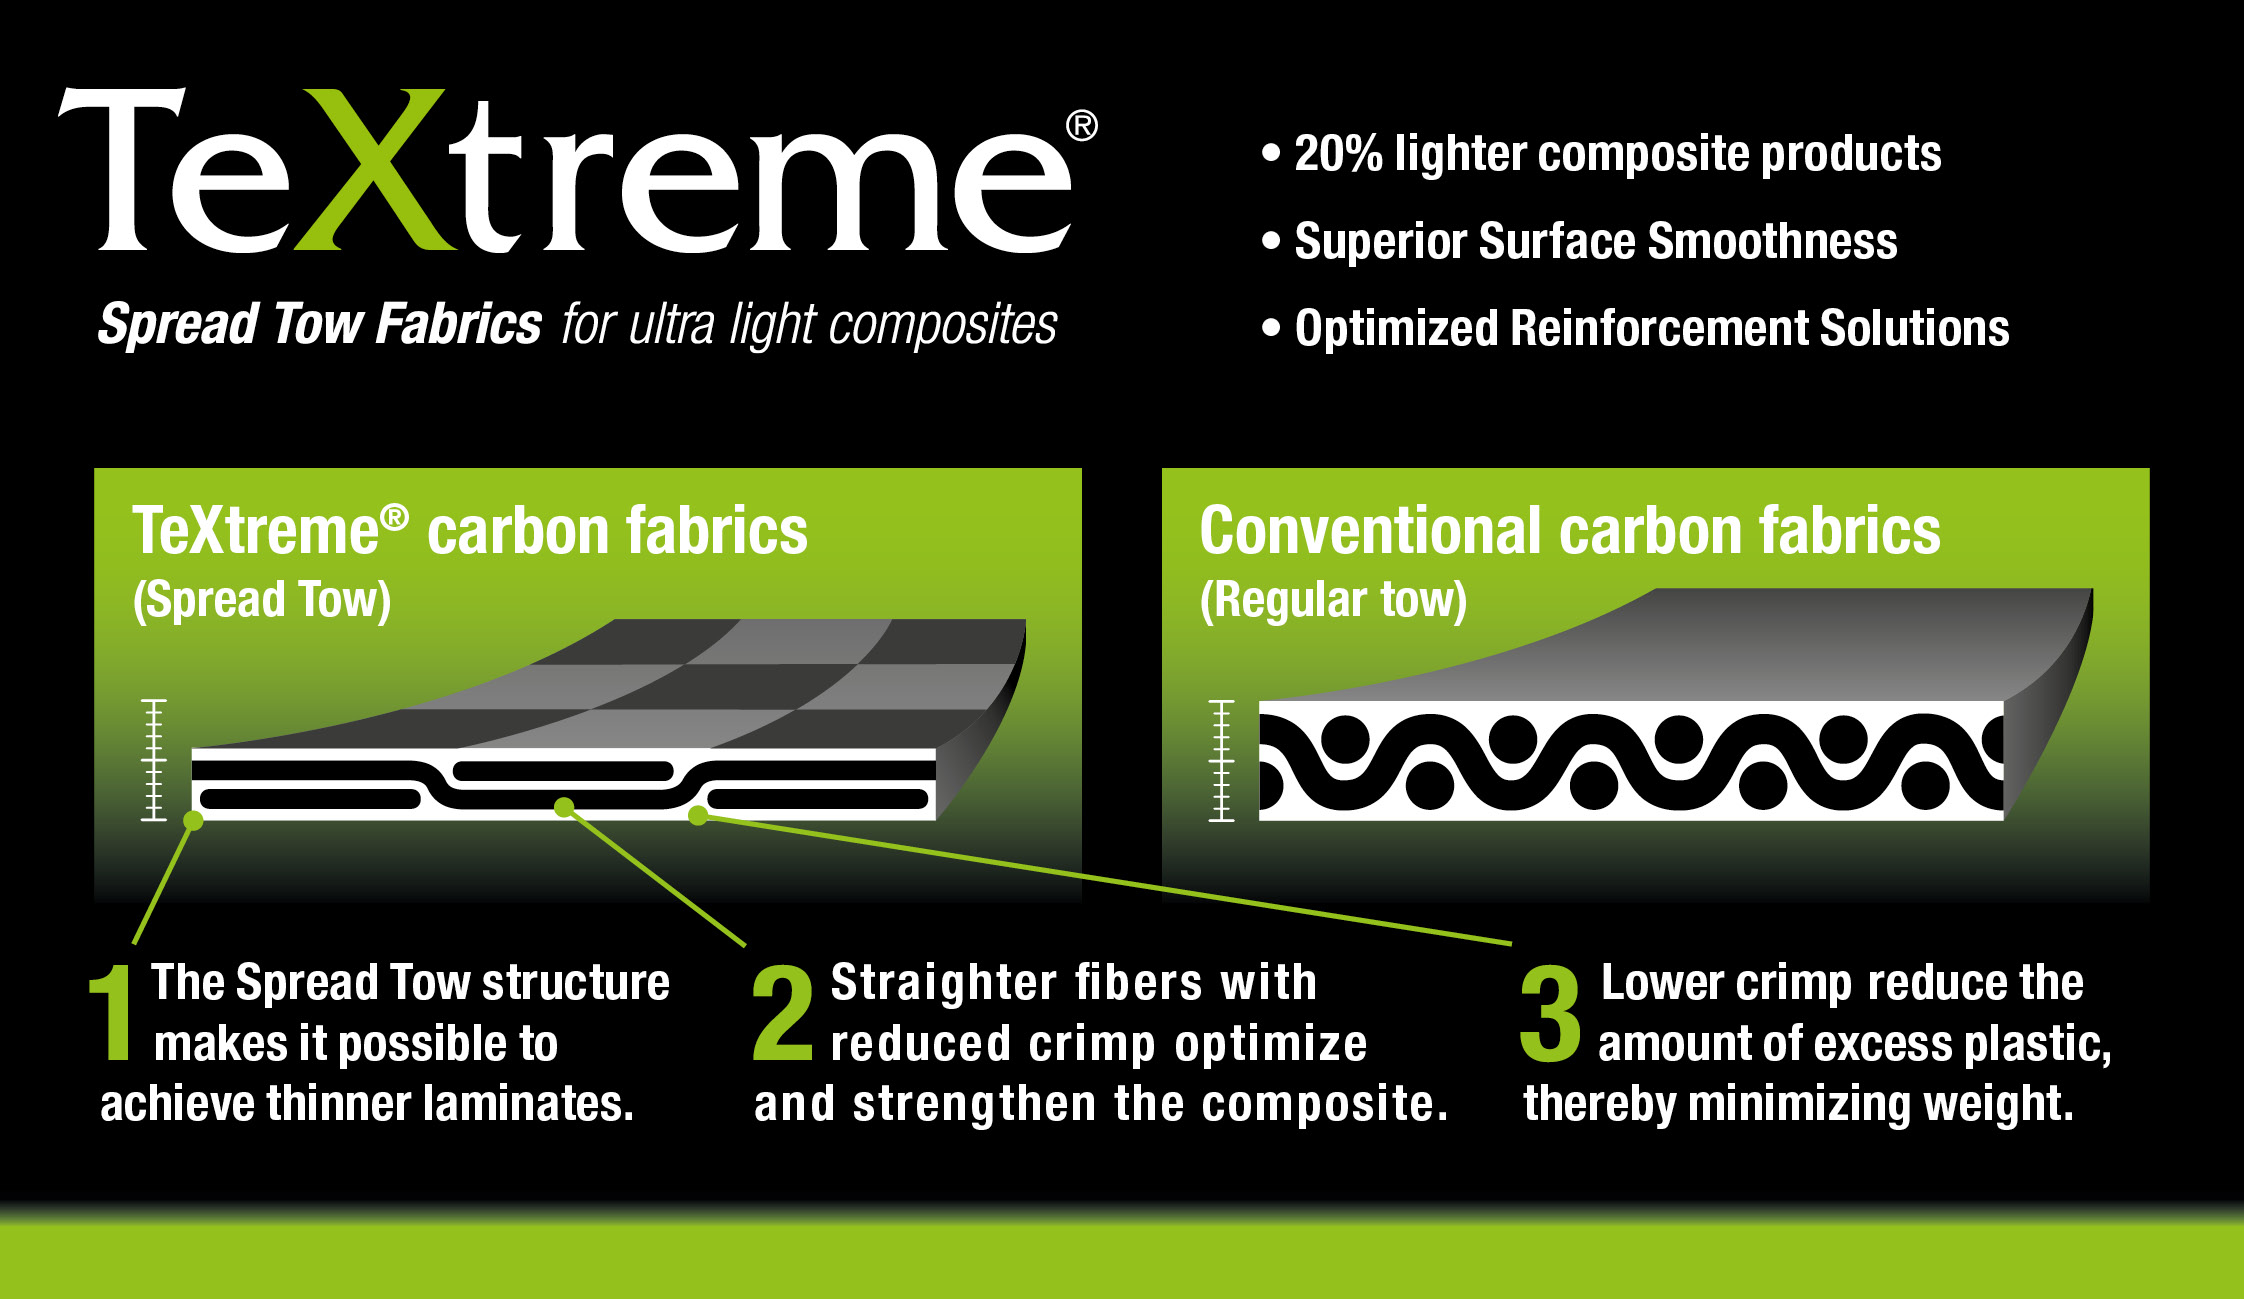 TeXtreme-Technology-Comparison-of-Spread-Tow-and-Regular-Tow